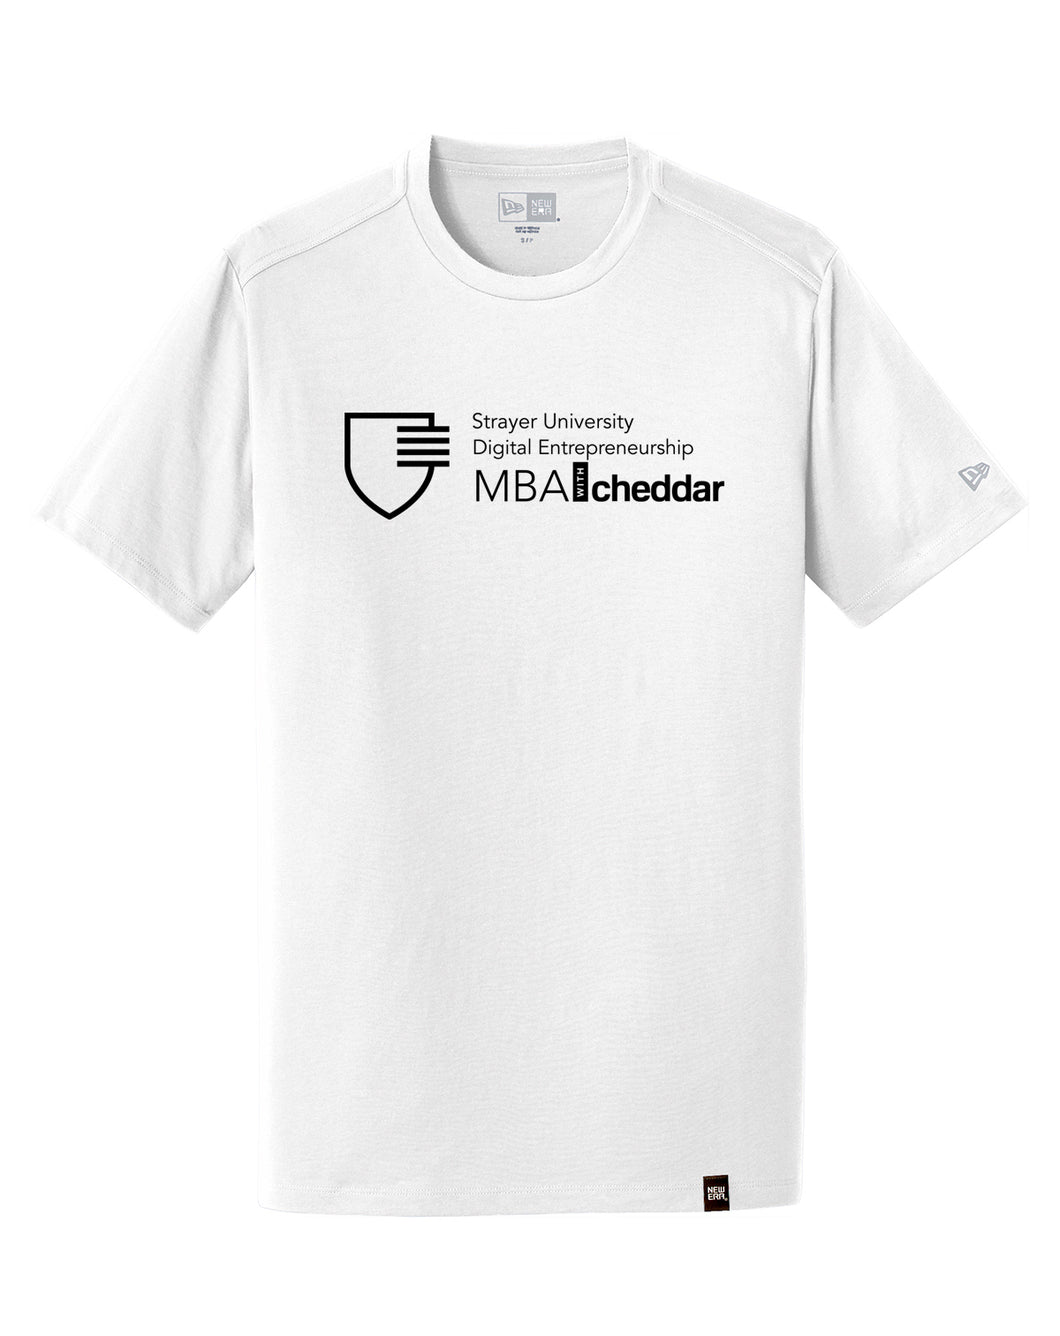 MBA CHEDDAR - New Era Heritage Blend Crew Tee - White